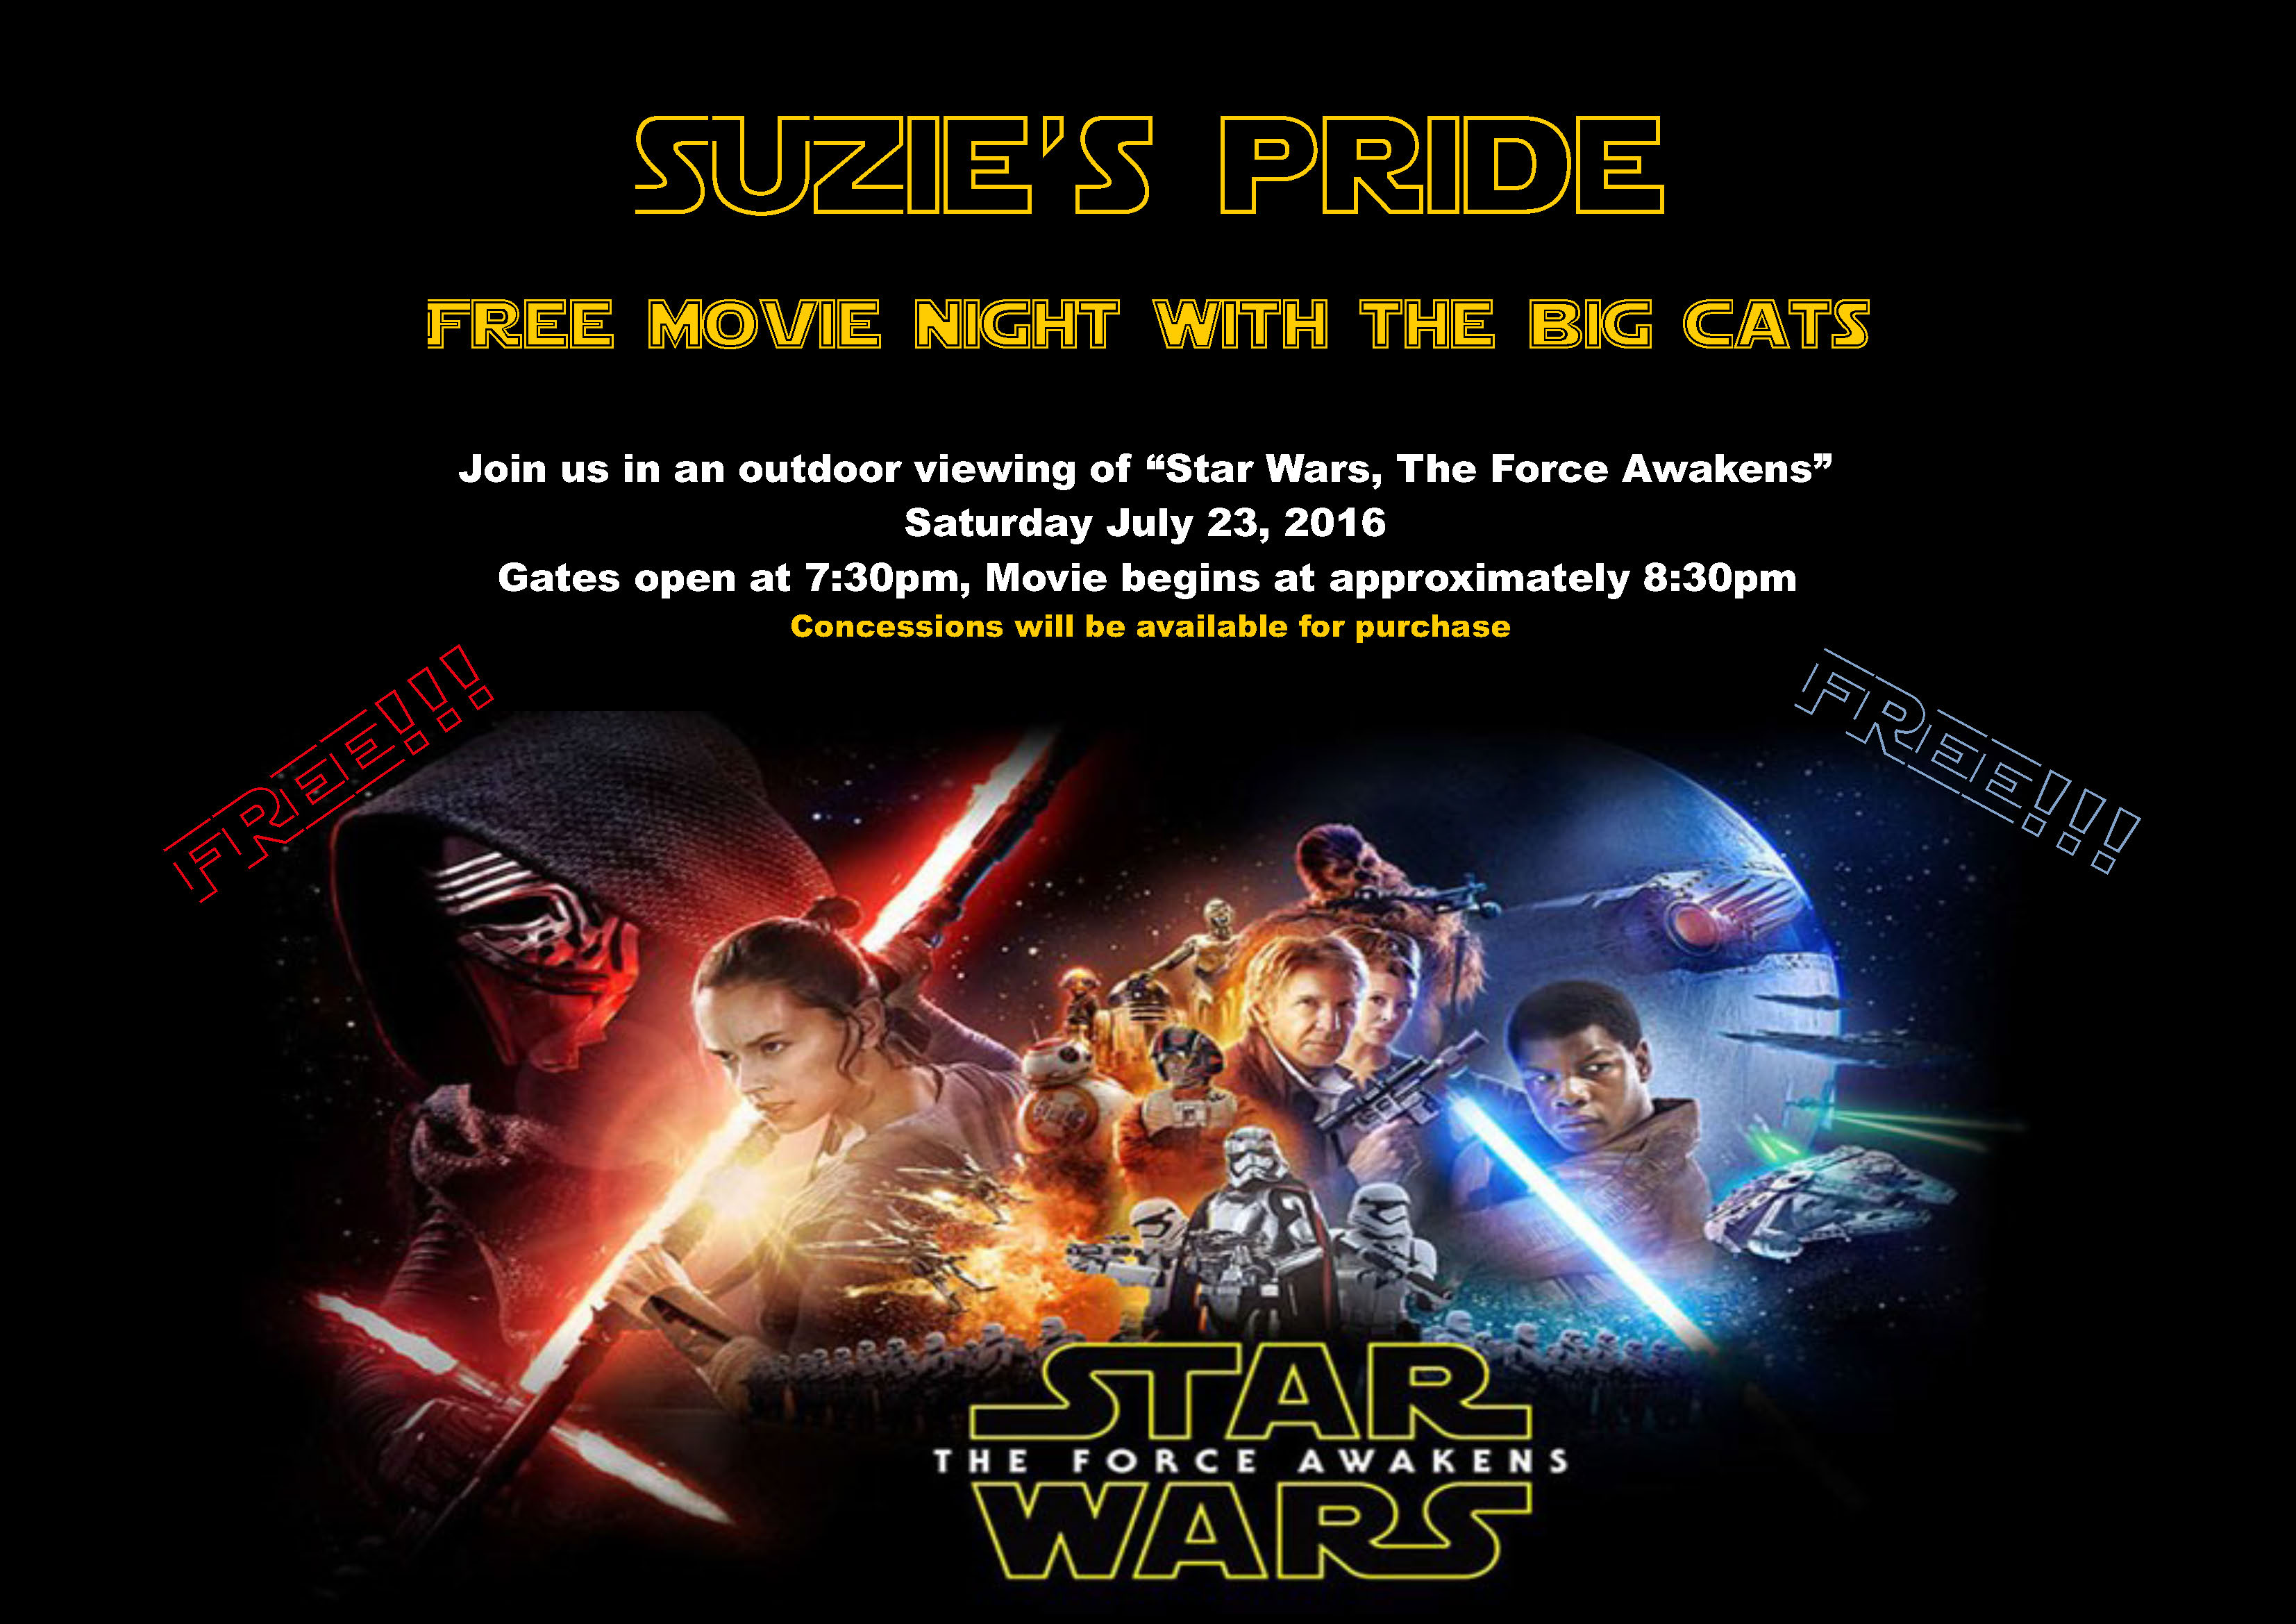 Free Movie Night with the Big Cats!!